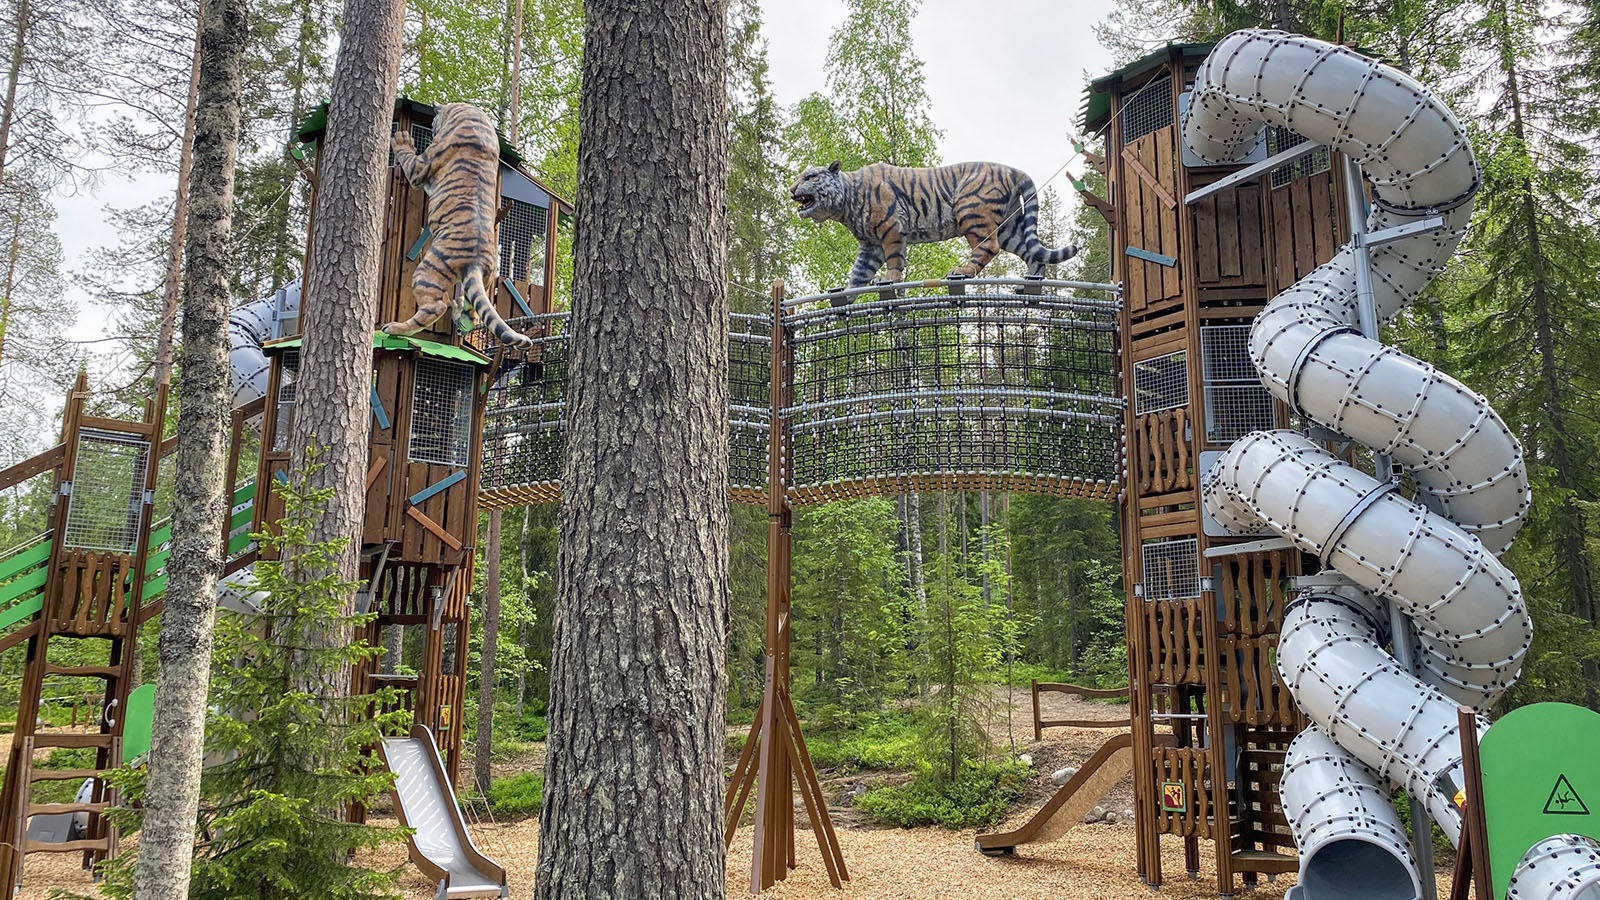 Custom-made playgrounds